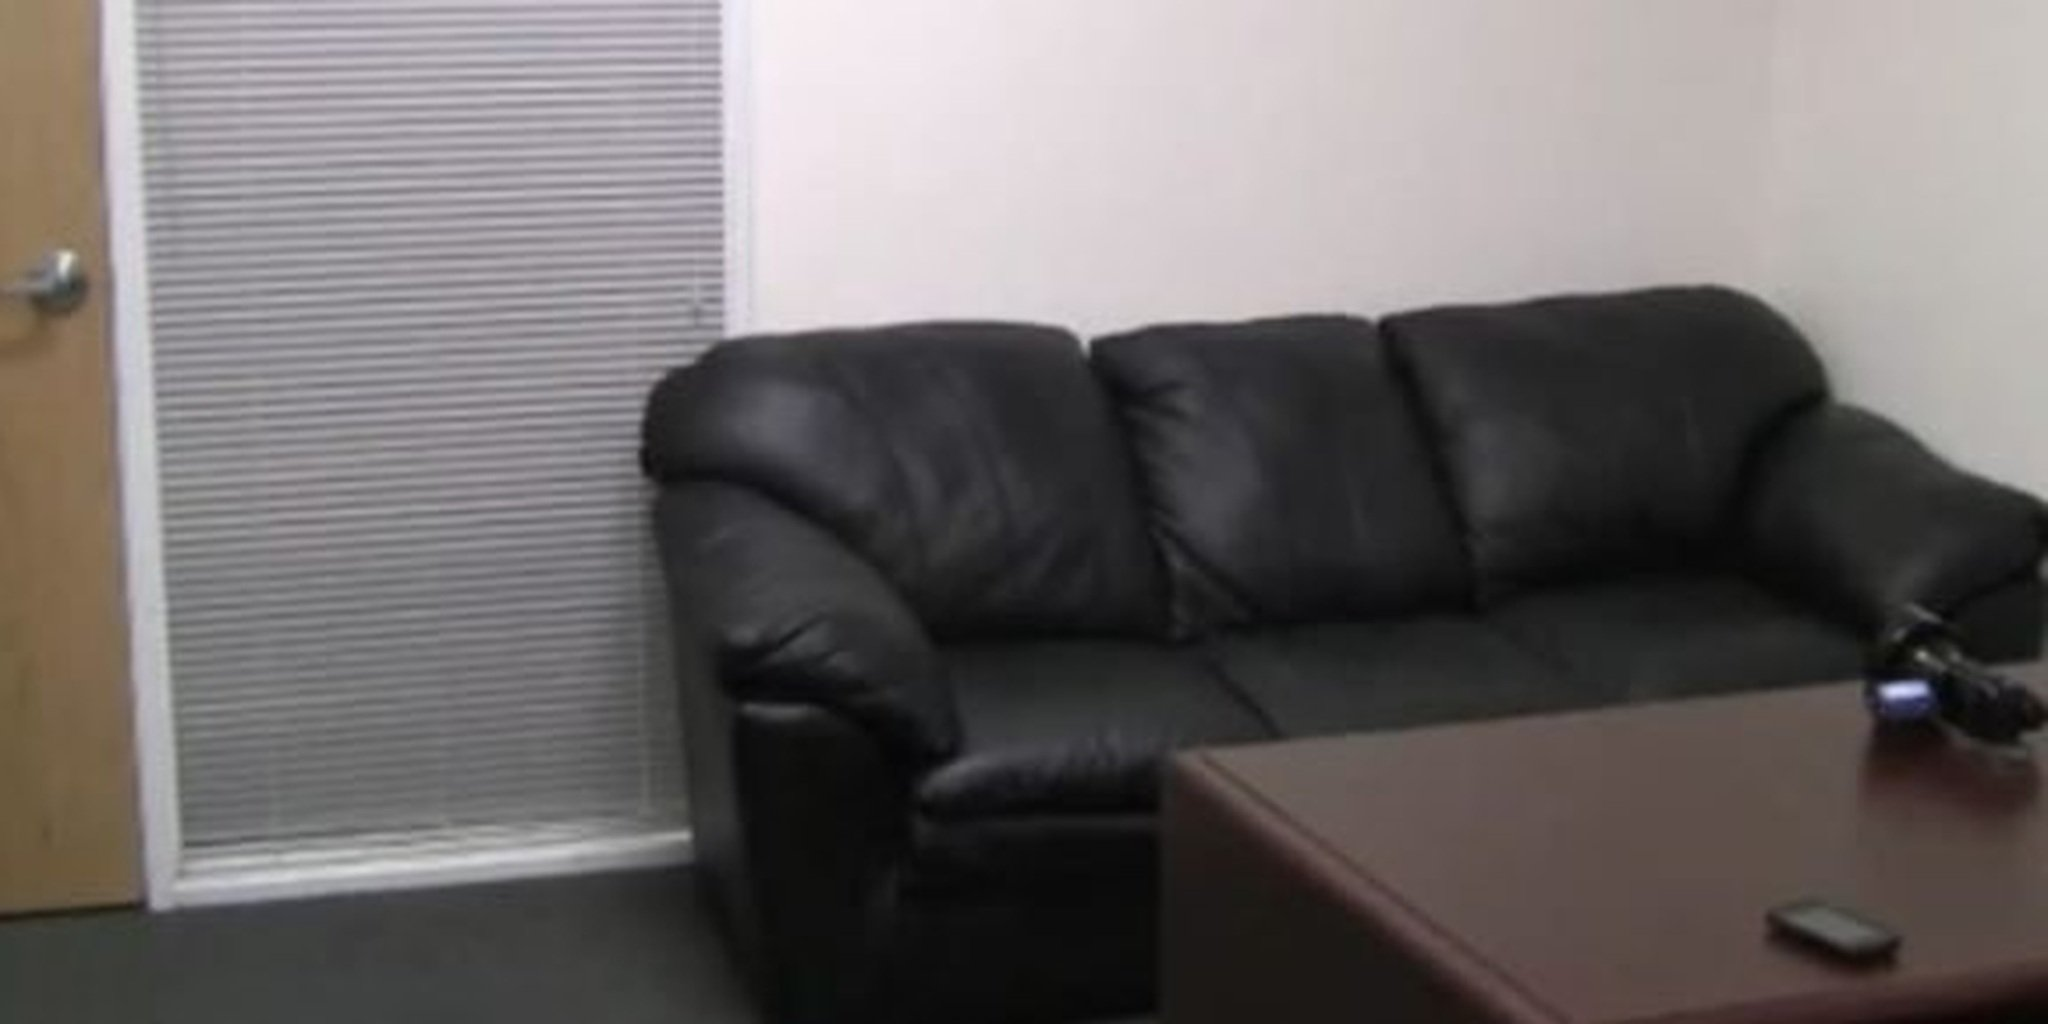 [Image - 620912] | The Casting Couch | Know Your Meme